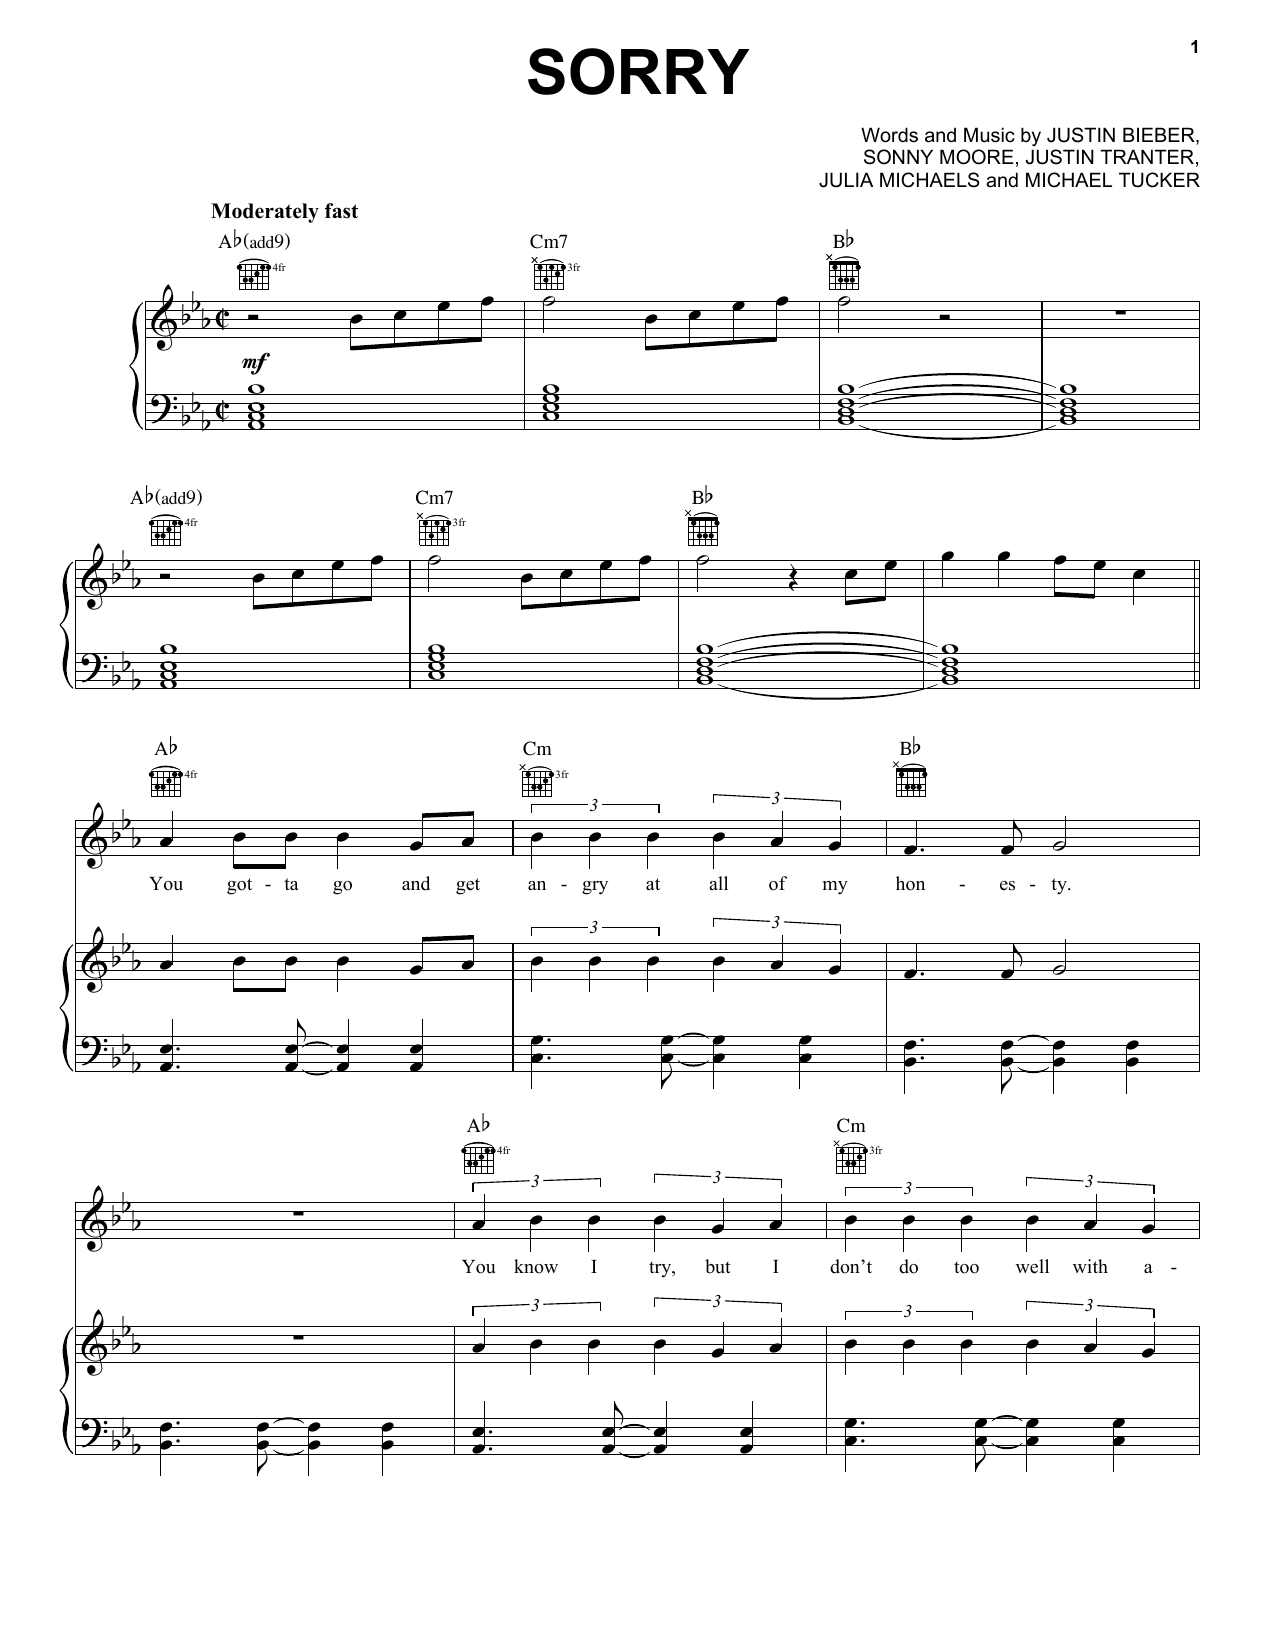 Ariana grande almost is never enough sheet music for piano best sorry for voice and piano or guitar by justin bieber julia michaels justin tranter sonny moore michael tucker hexwebz Image collections